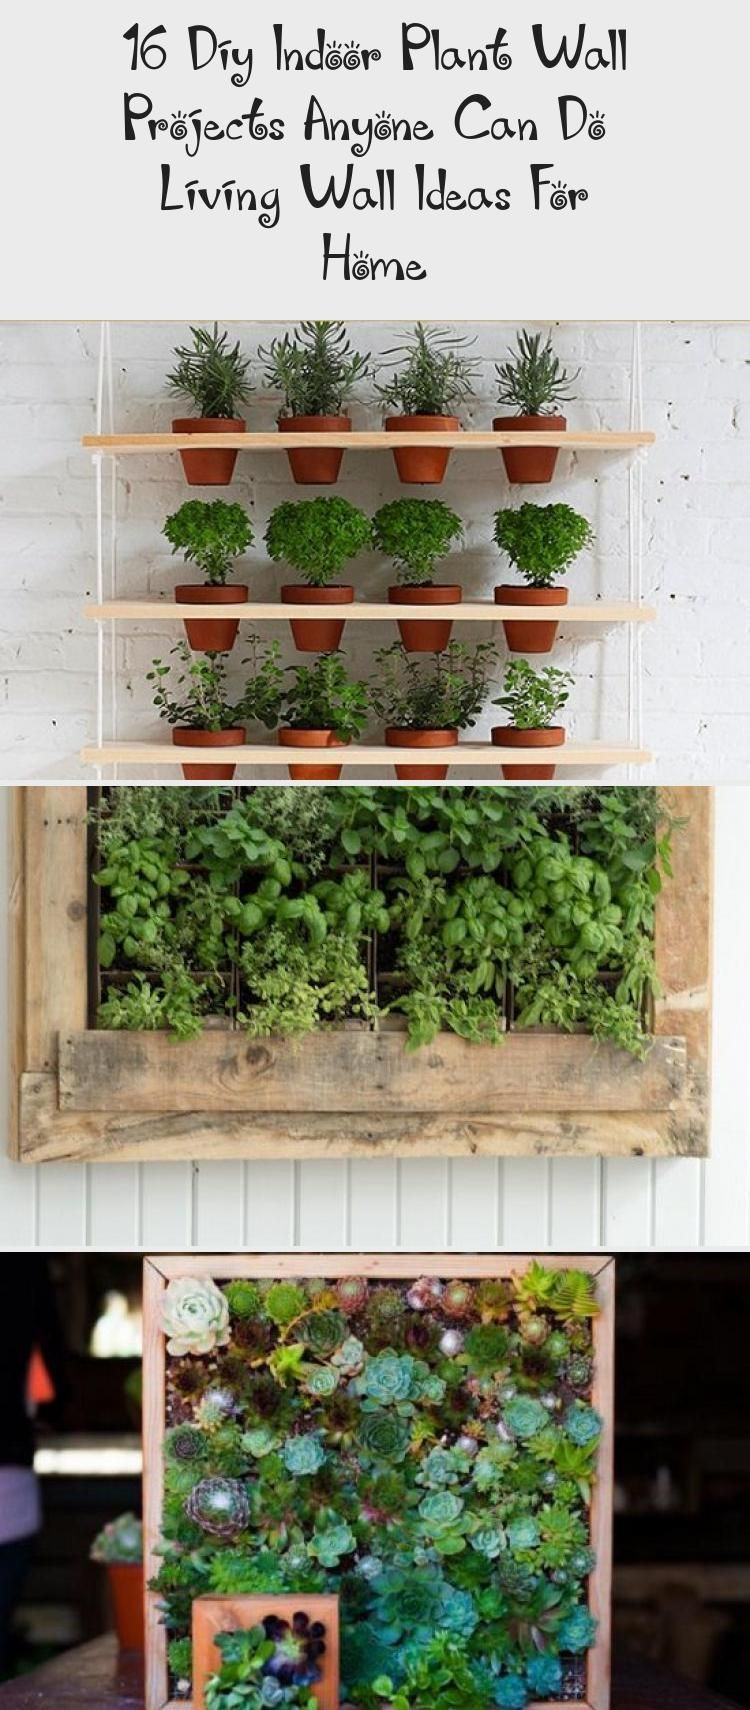 16 Diy Indoor Plant Wall Projects Anyone Can Do Living Wall Ideas For Home B Diy Home Ideas Indoor In 2020 Indoor Plant Wall Hanging Plants Indoor Plant Wall